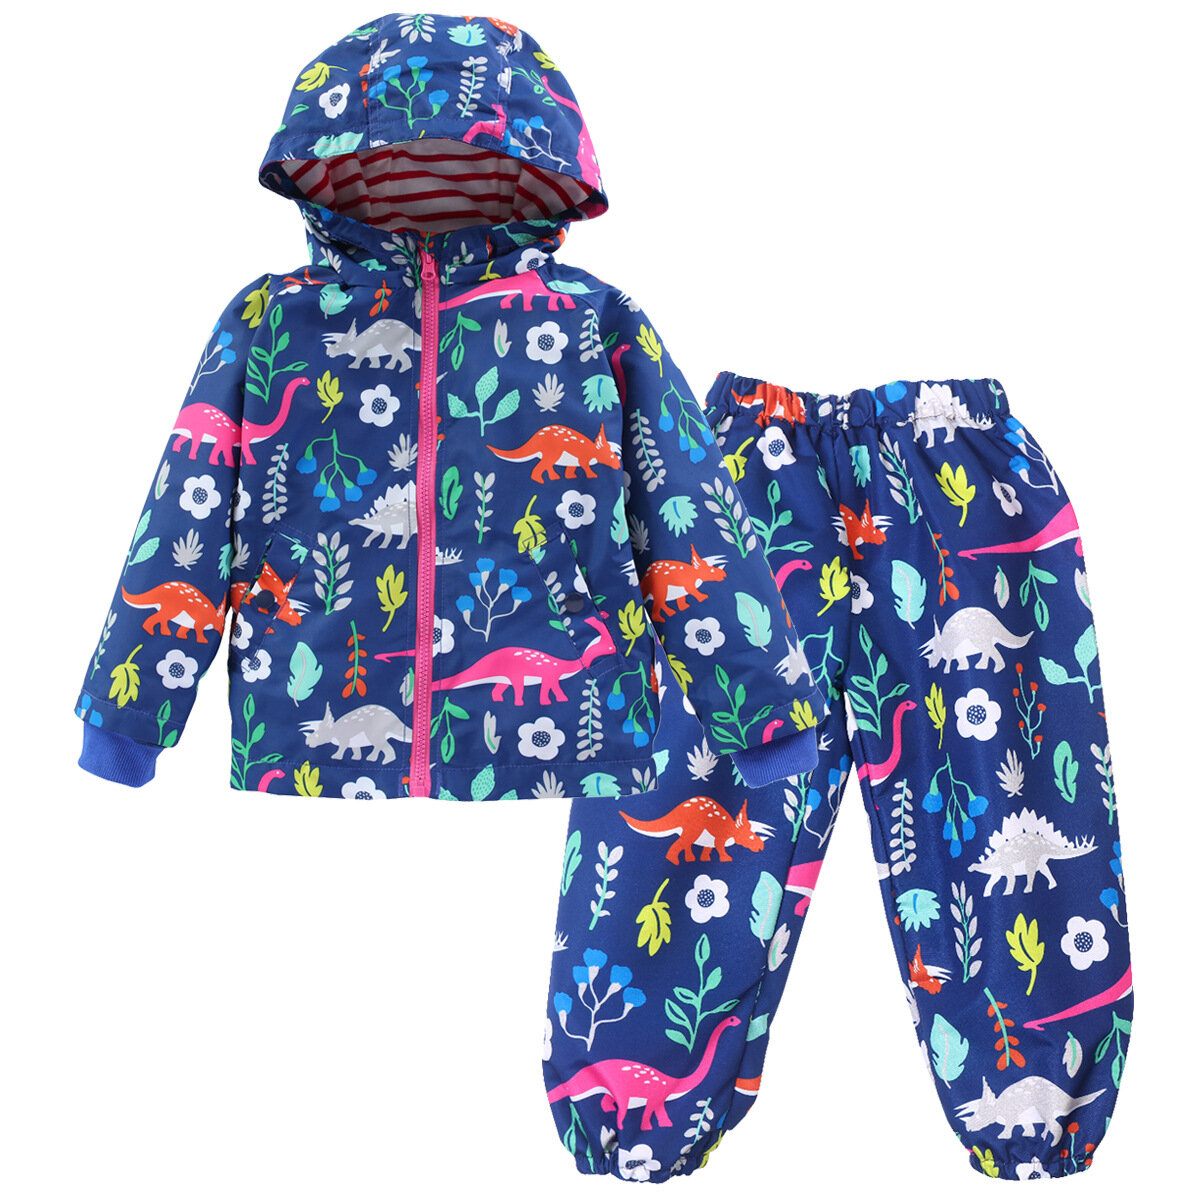 Kids Baby Girl Waterproof Hooded Rain Jacket Floral Print Raincoat Hoodies Outwear